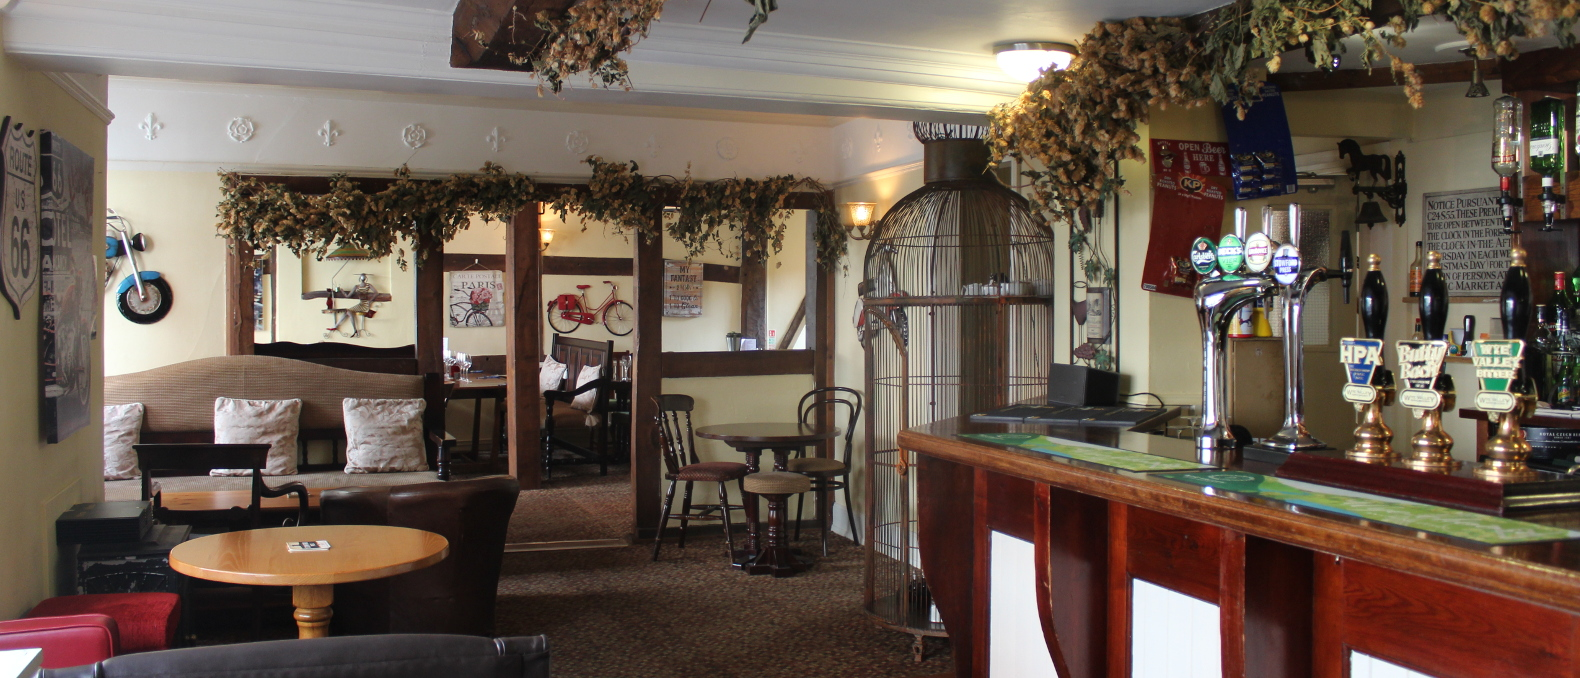 Pub And Restaurant In Bromyard, Herefordshire